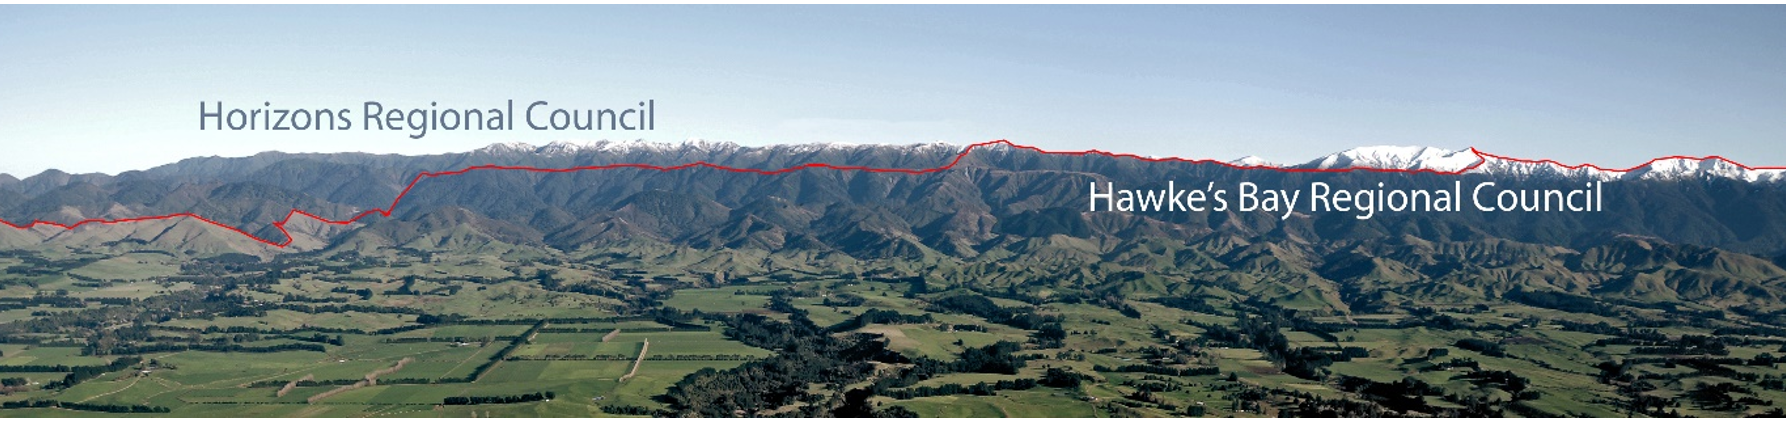 Landscape - Hills with dividing line between Horizons and Hawke's Bay Regional Councils